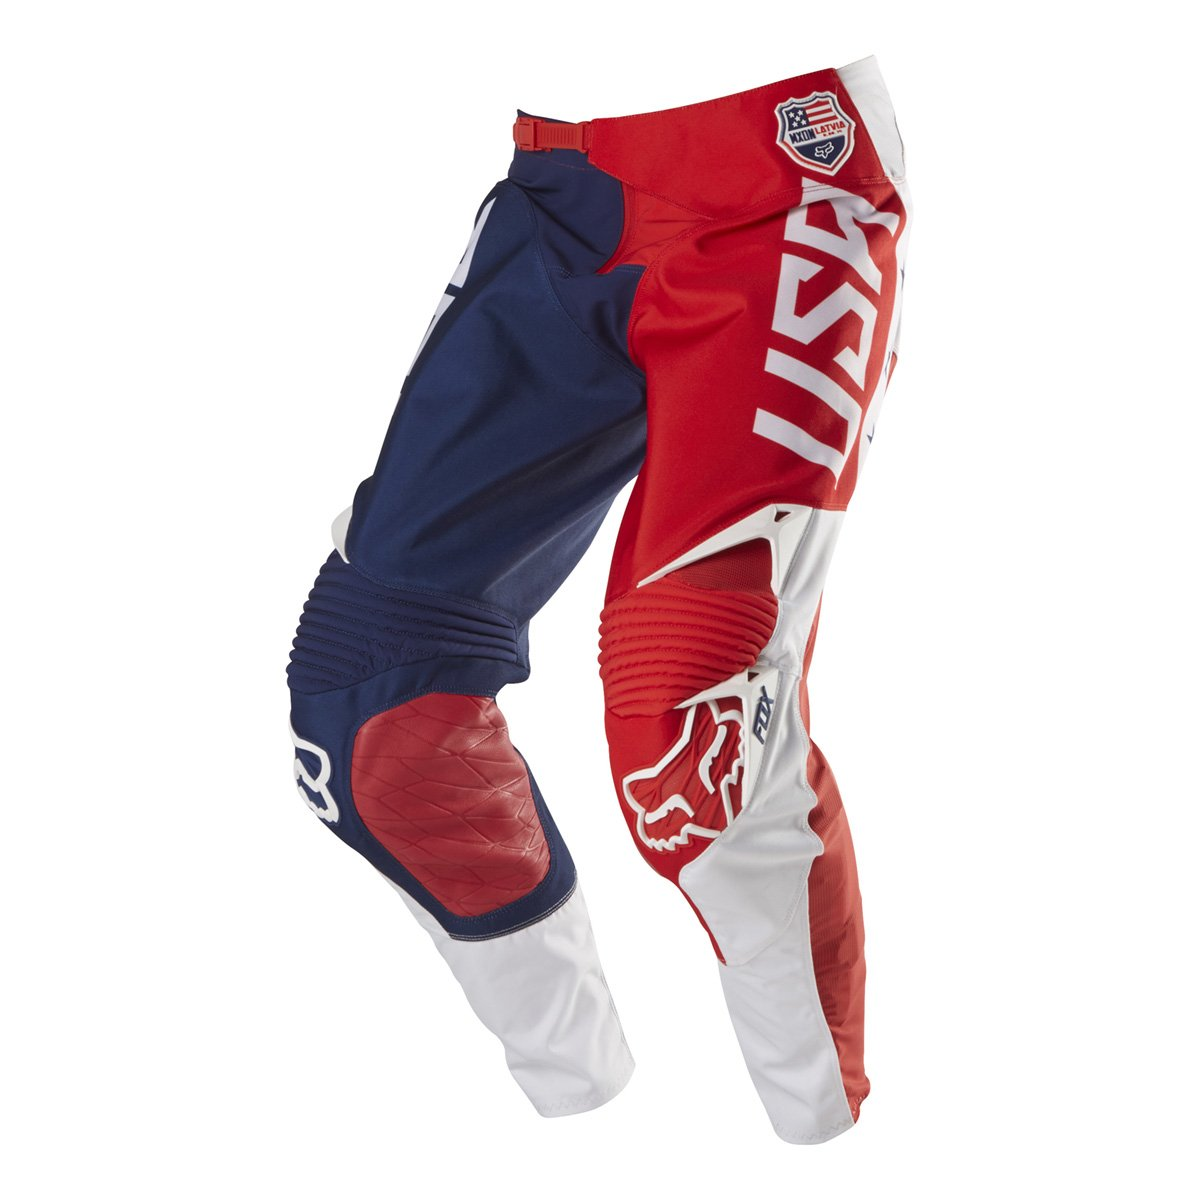 Fox Racing 360 MXON Men's Off-Road Motorcycle Pants - Patriot / Size 34